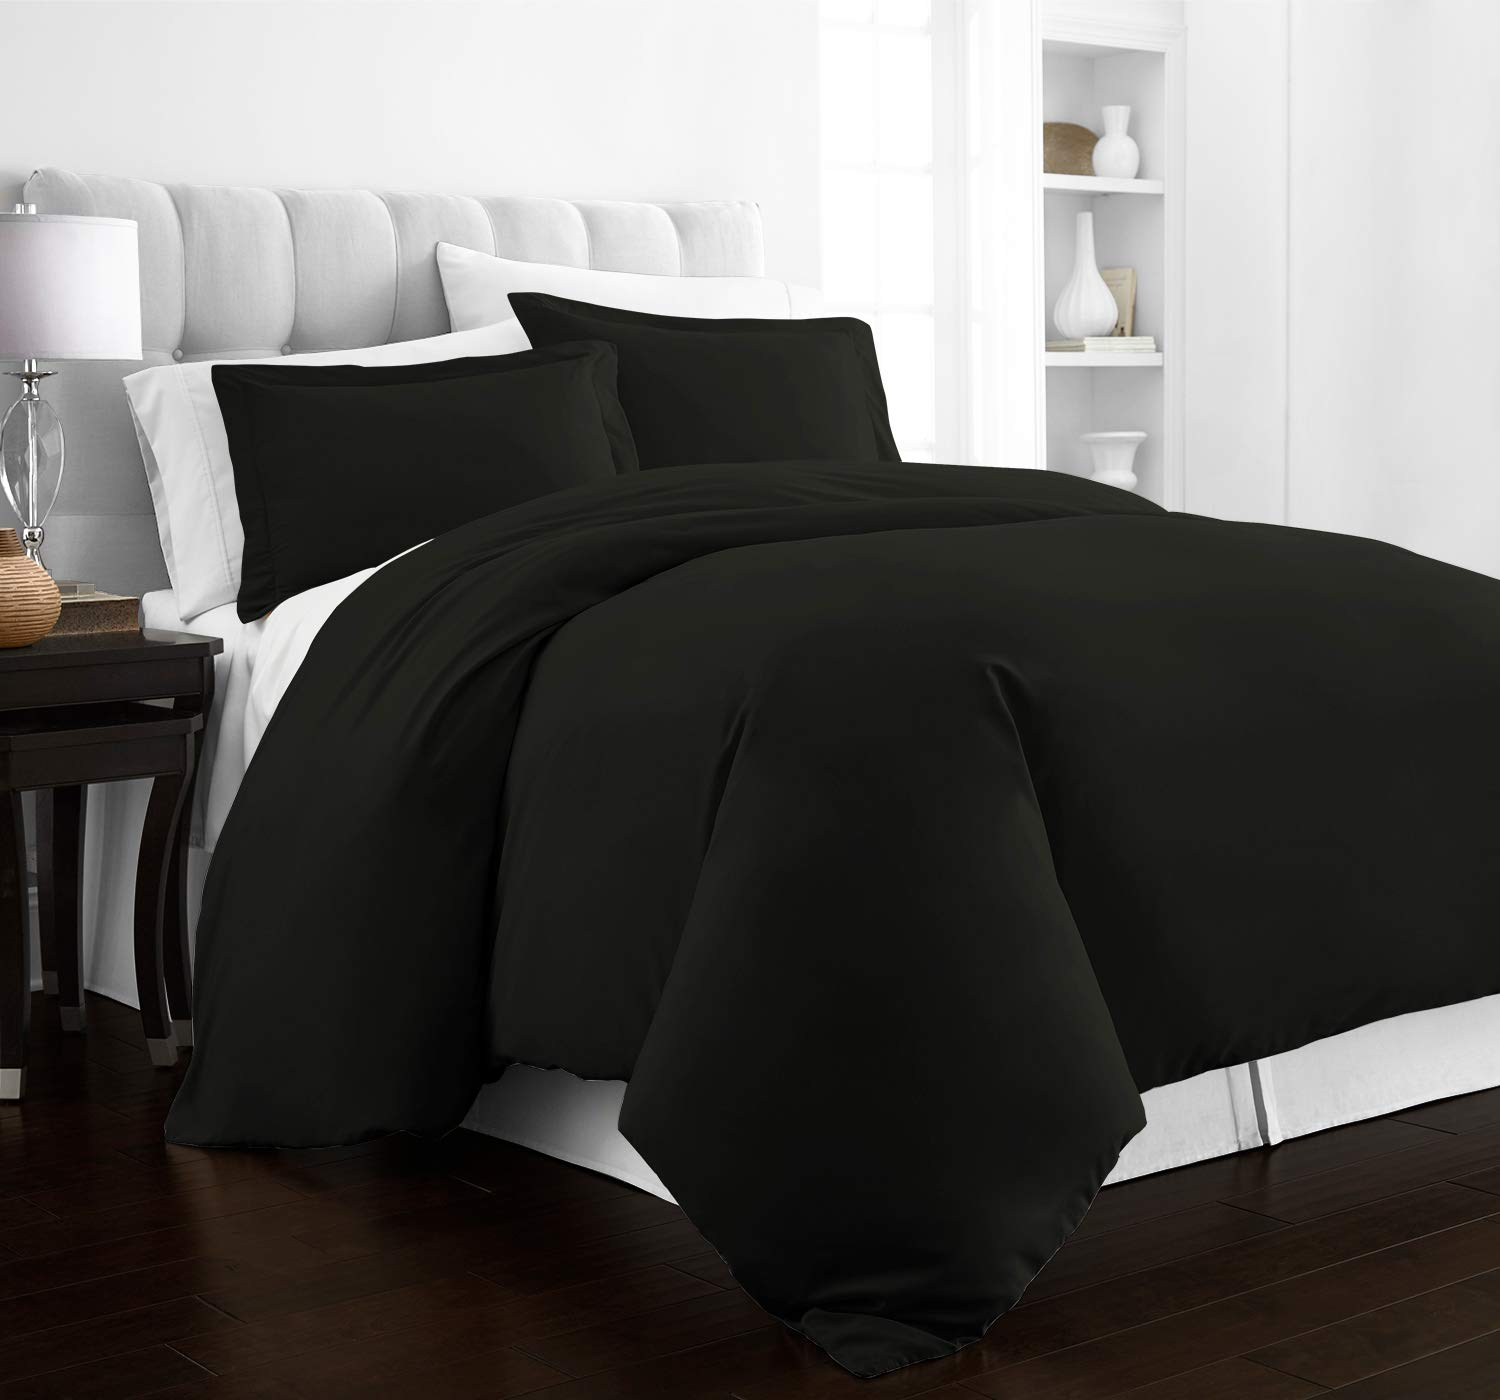 Beckham Hotel Collection Luxury Soft Brushed 2100 Series Microfiber Duvet Cover Set - Hypoallergenic - Full/Queen - Black